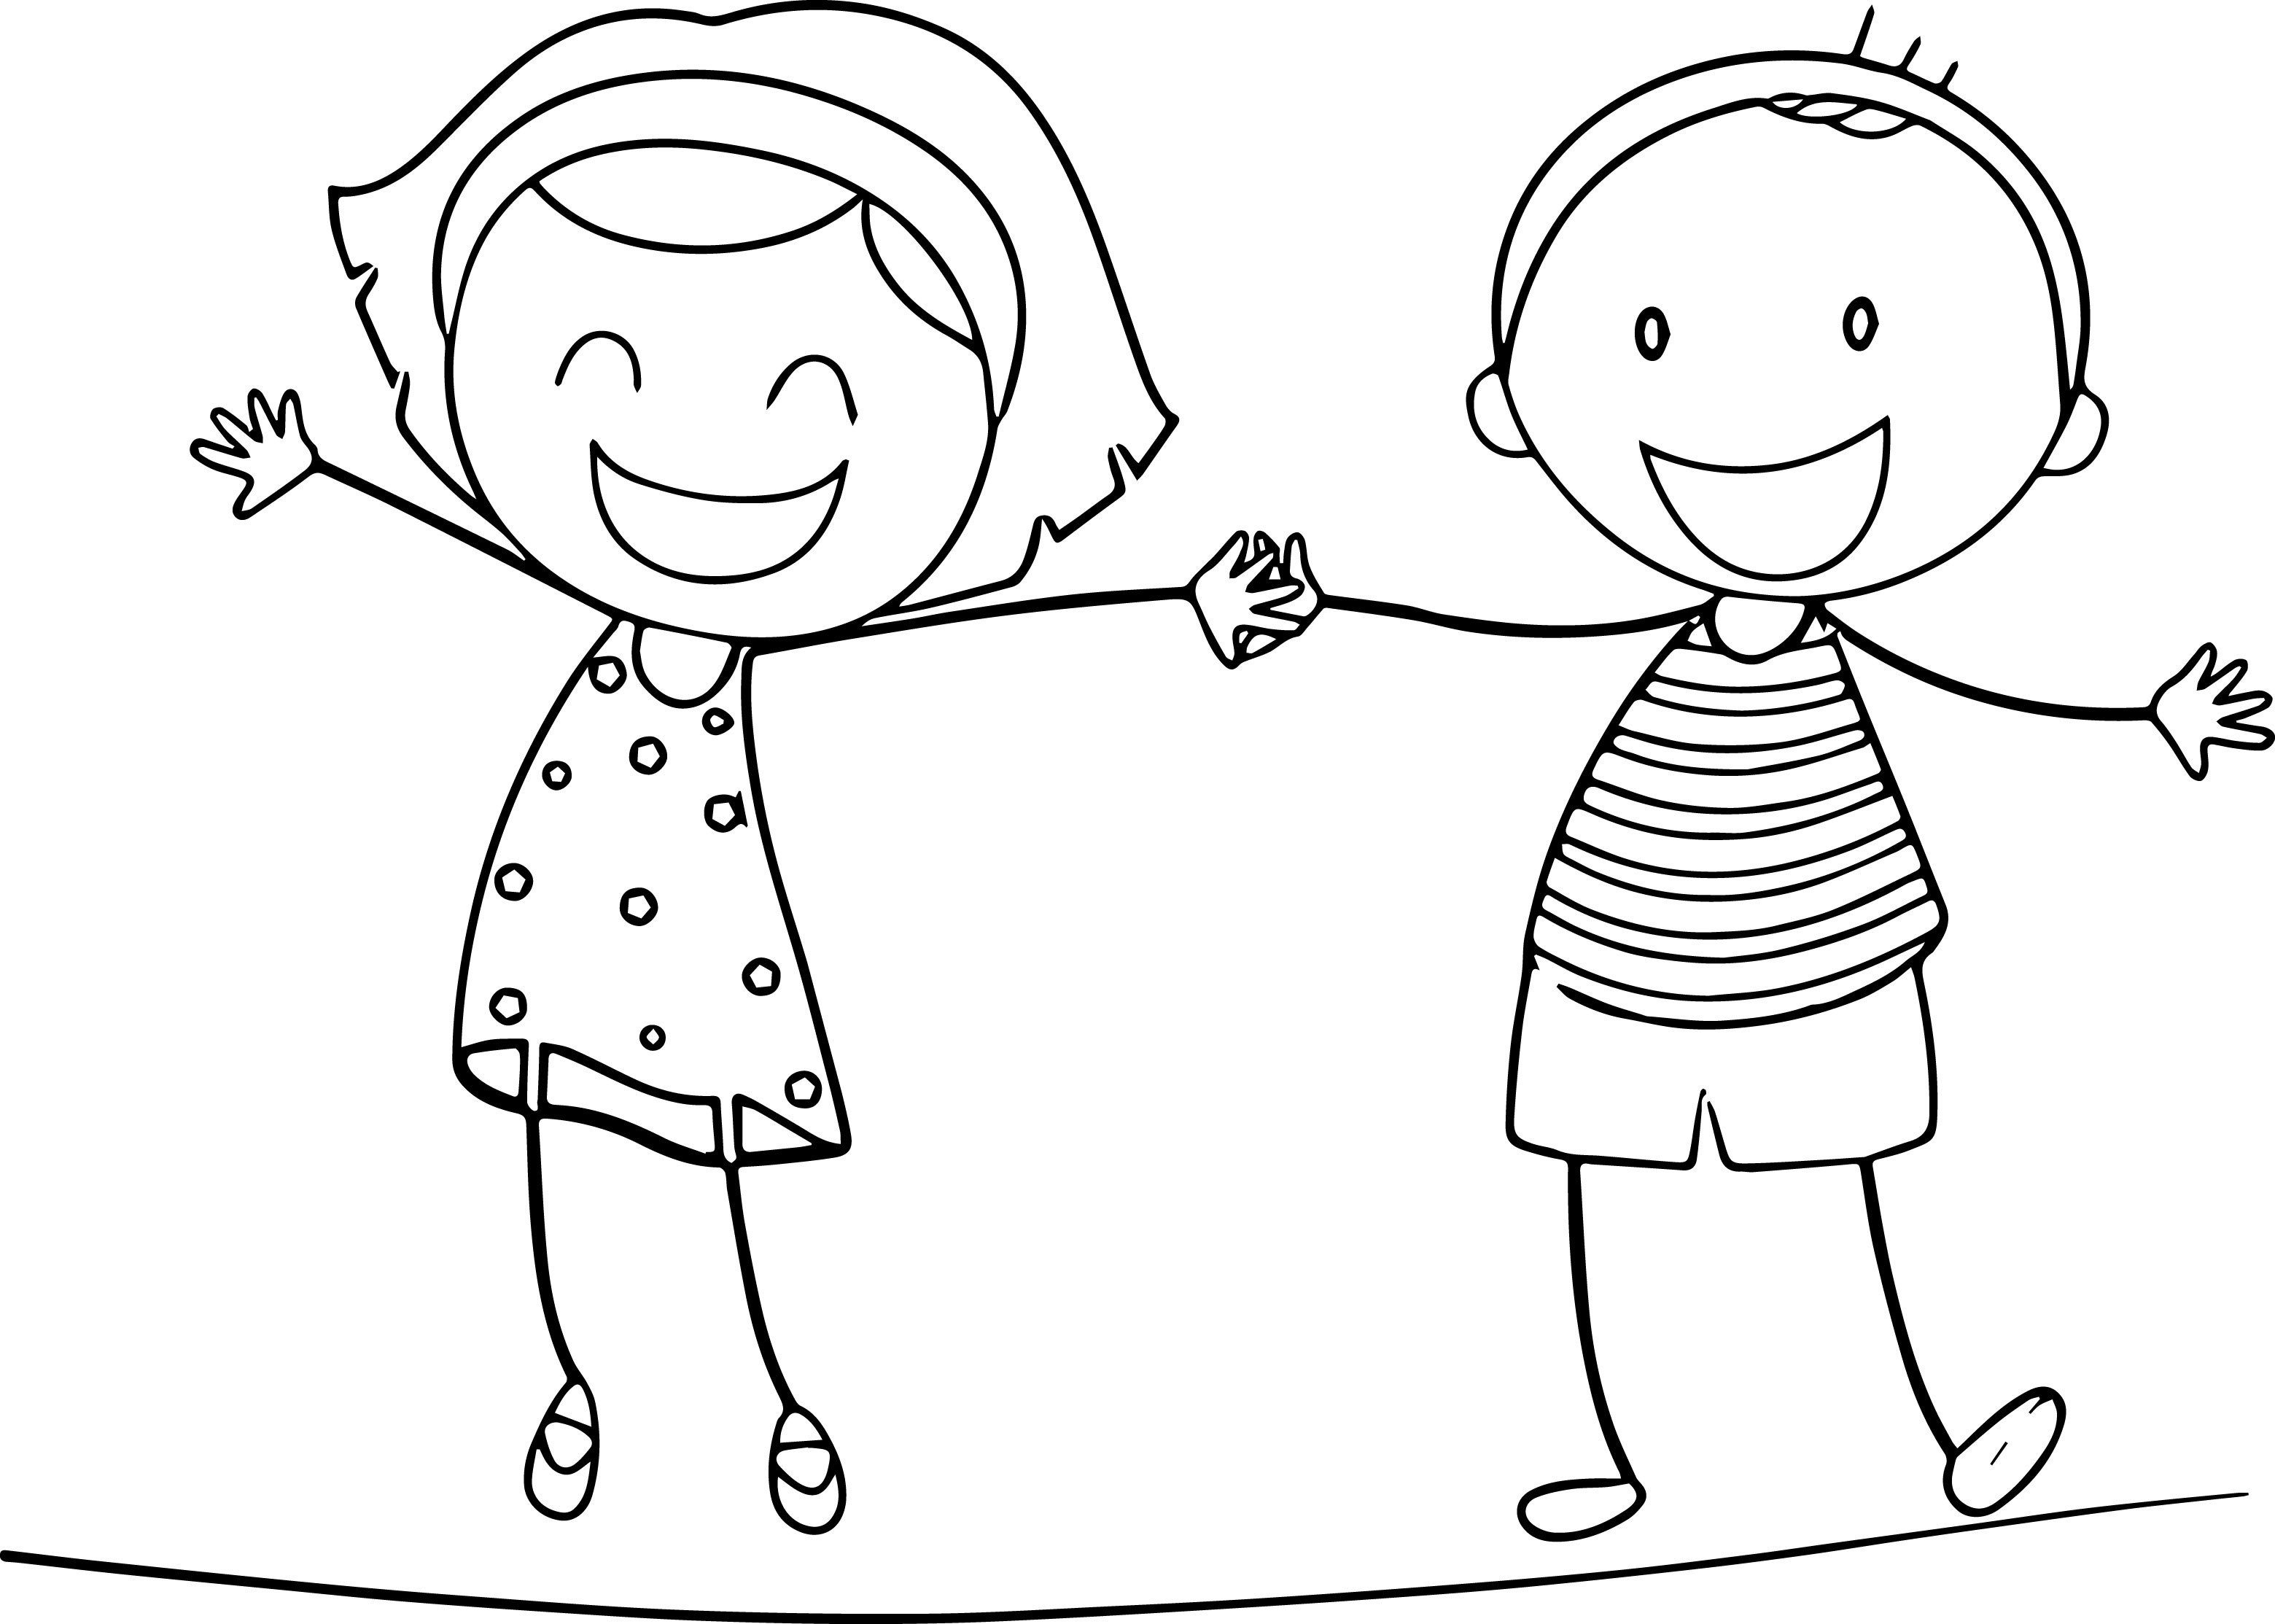 Coloring Sheets For Girls And Boys  Fun Coloring Pages For Boys And Girls The Art Jinni